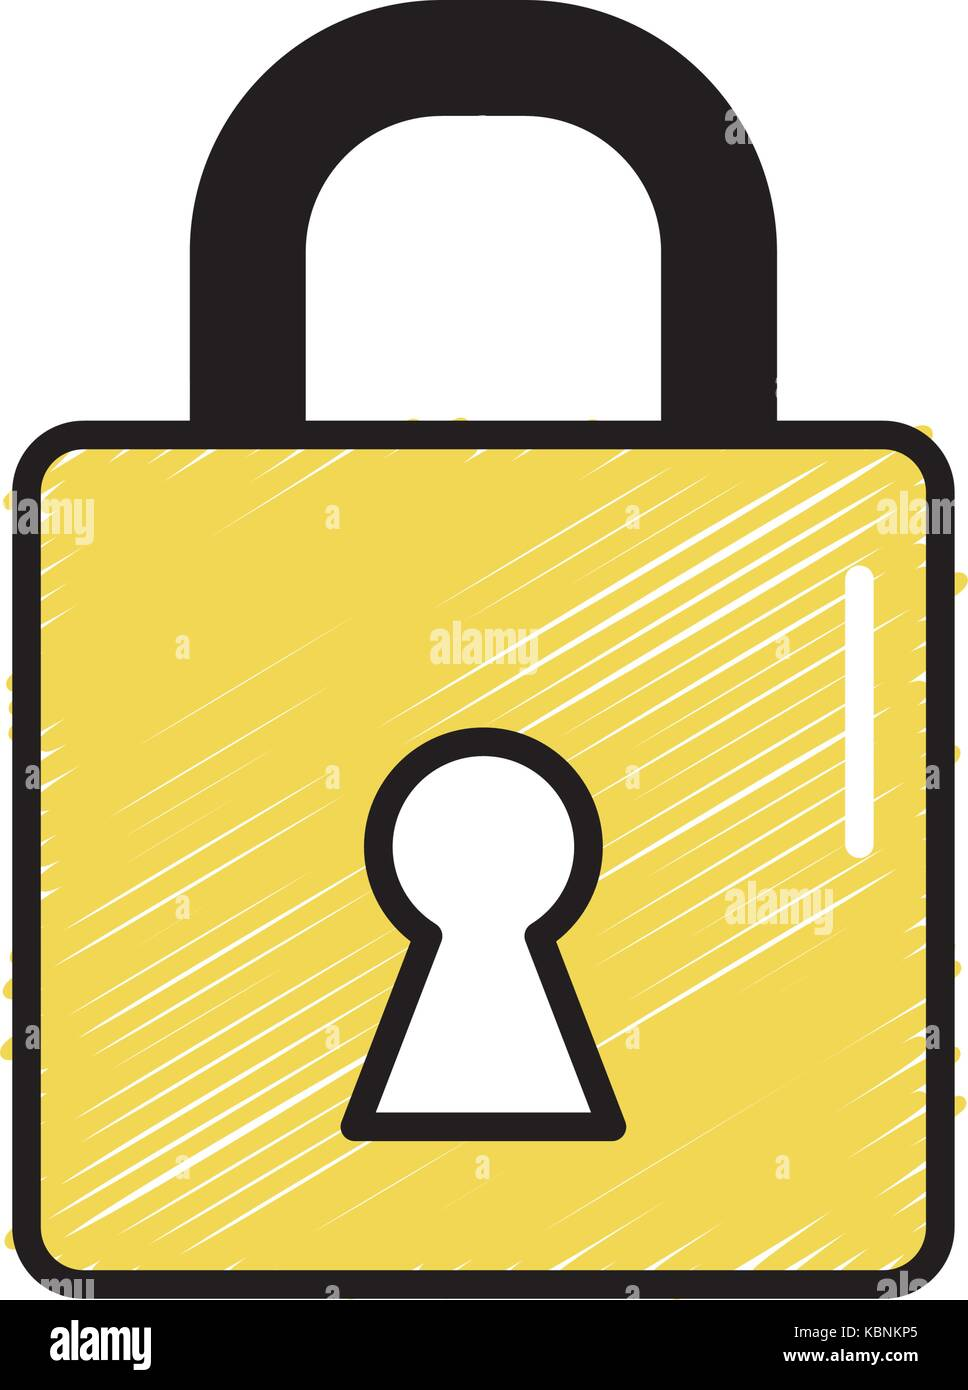 padlock element to security password protection - Stock Image